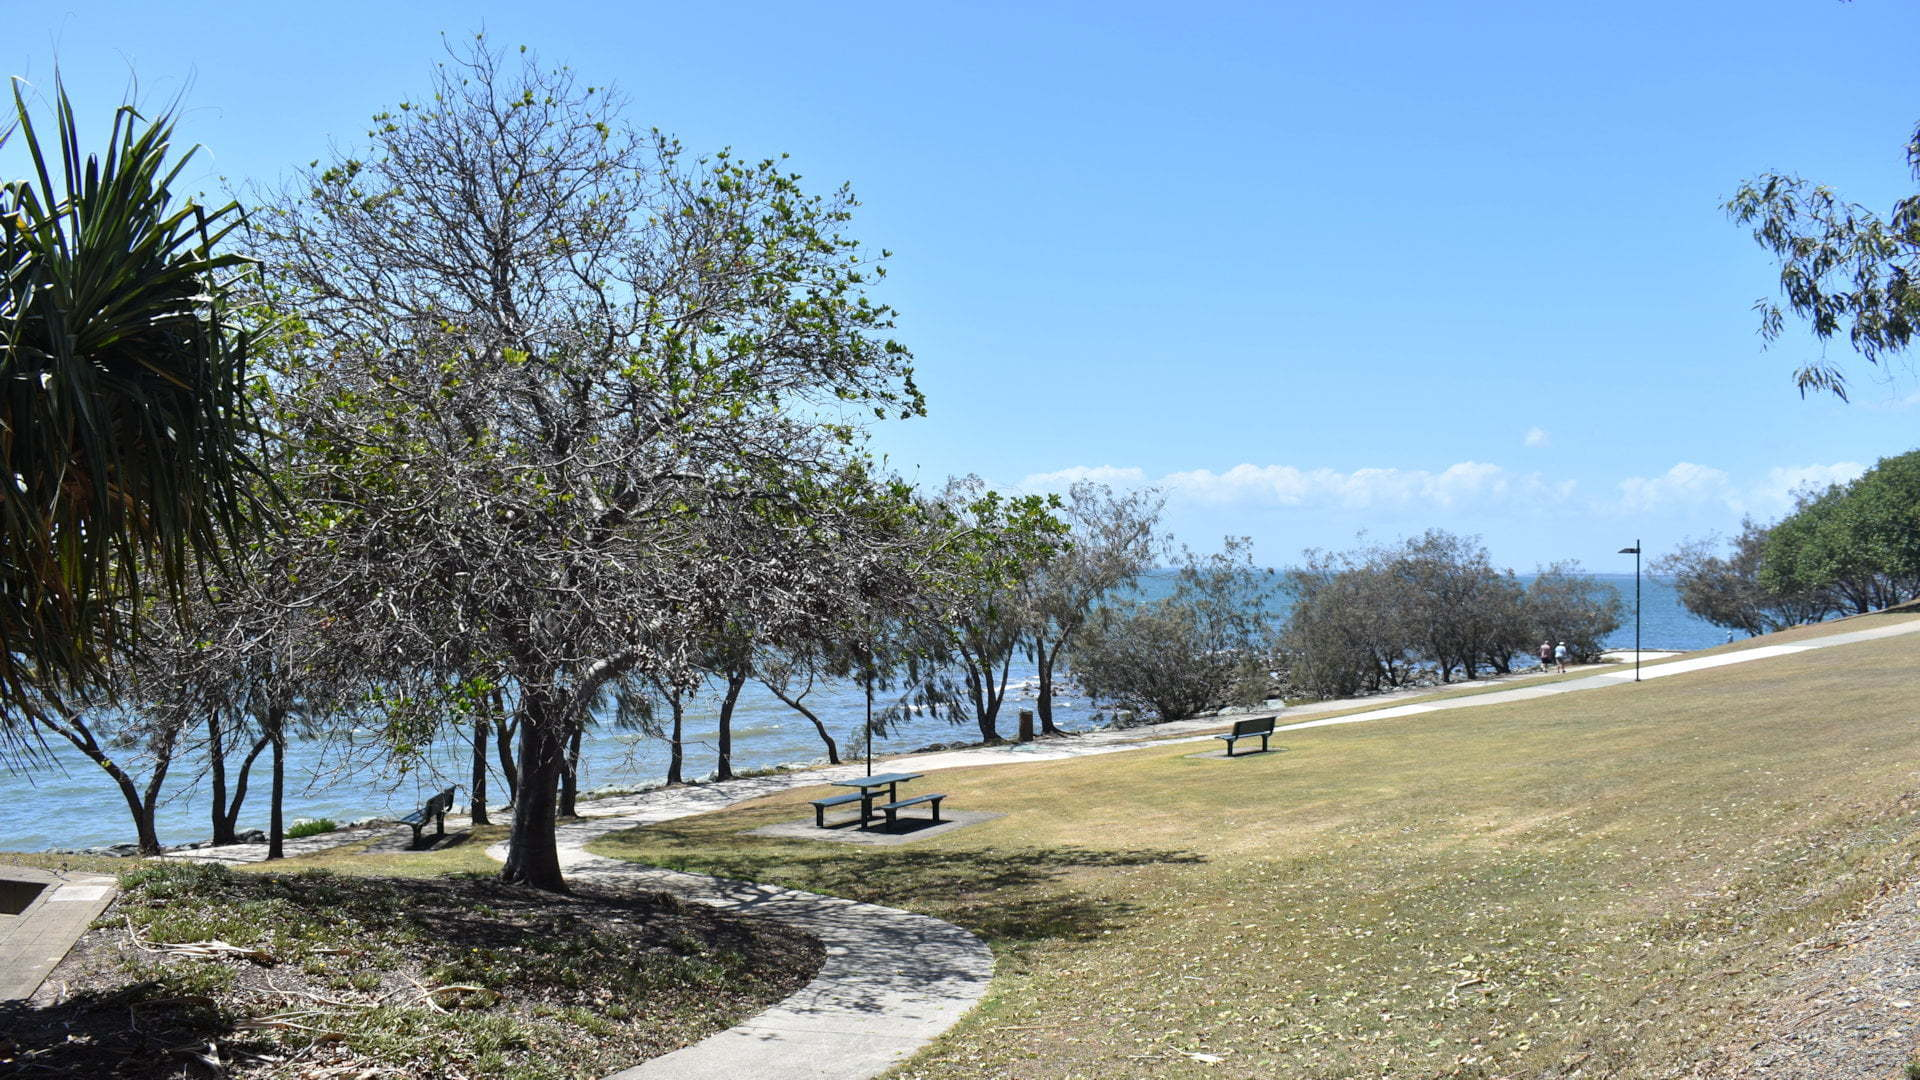 Parkland on the coast, at the Gayundah Coastal Aboretum at Woody Point on the Redcliffe Peninsula